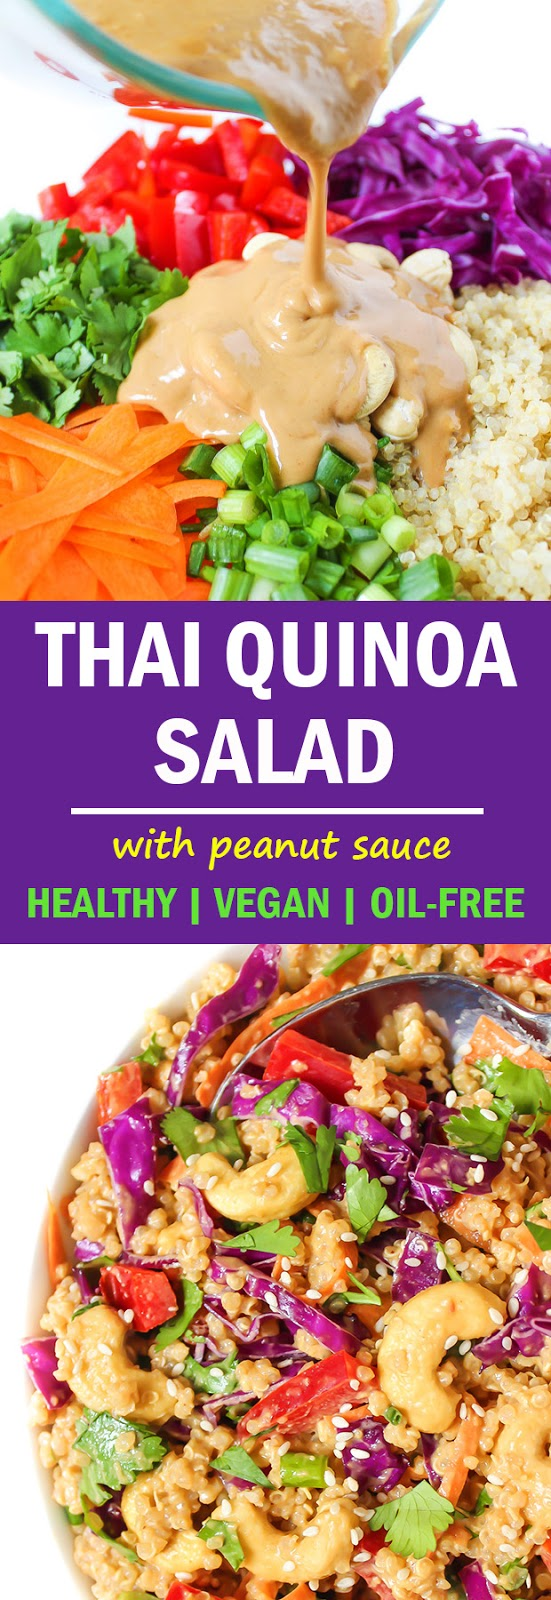 Photo collage of Vegan Thai Quinoa Salad